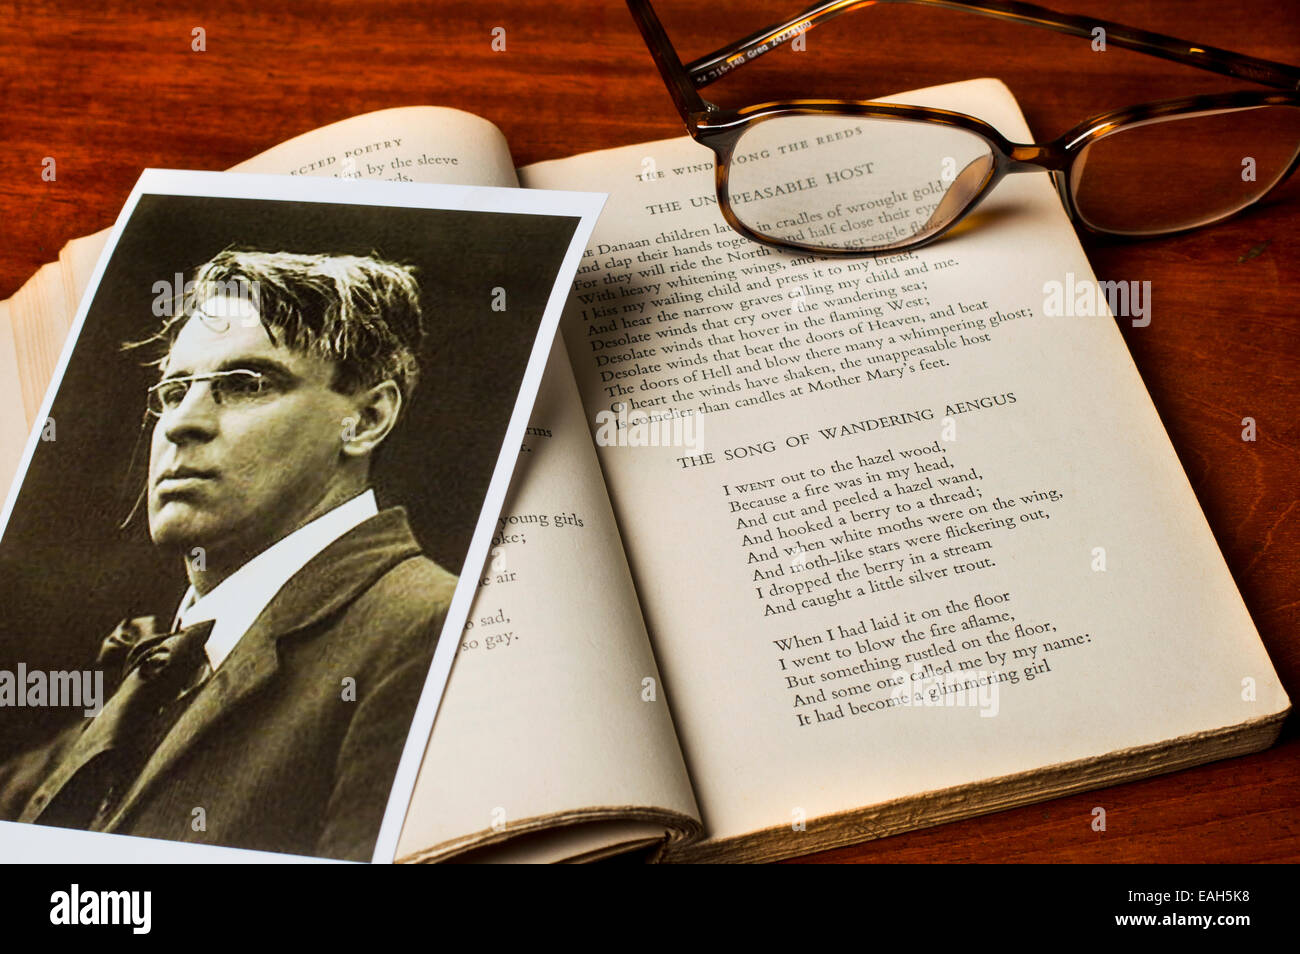 Photo of Irish poet W.B.Yeats with the text of his famous poem The Song of Wandering Aengus - Stock Image